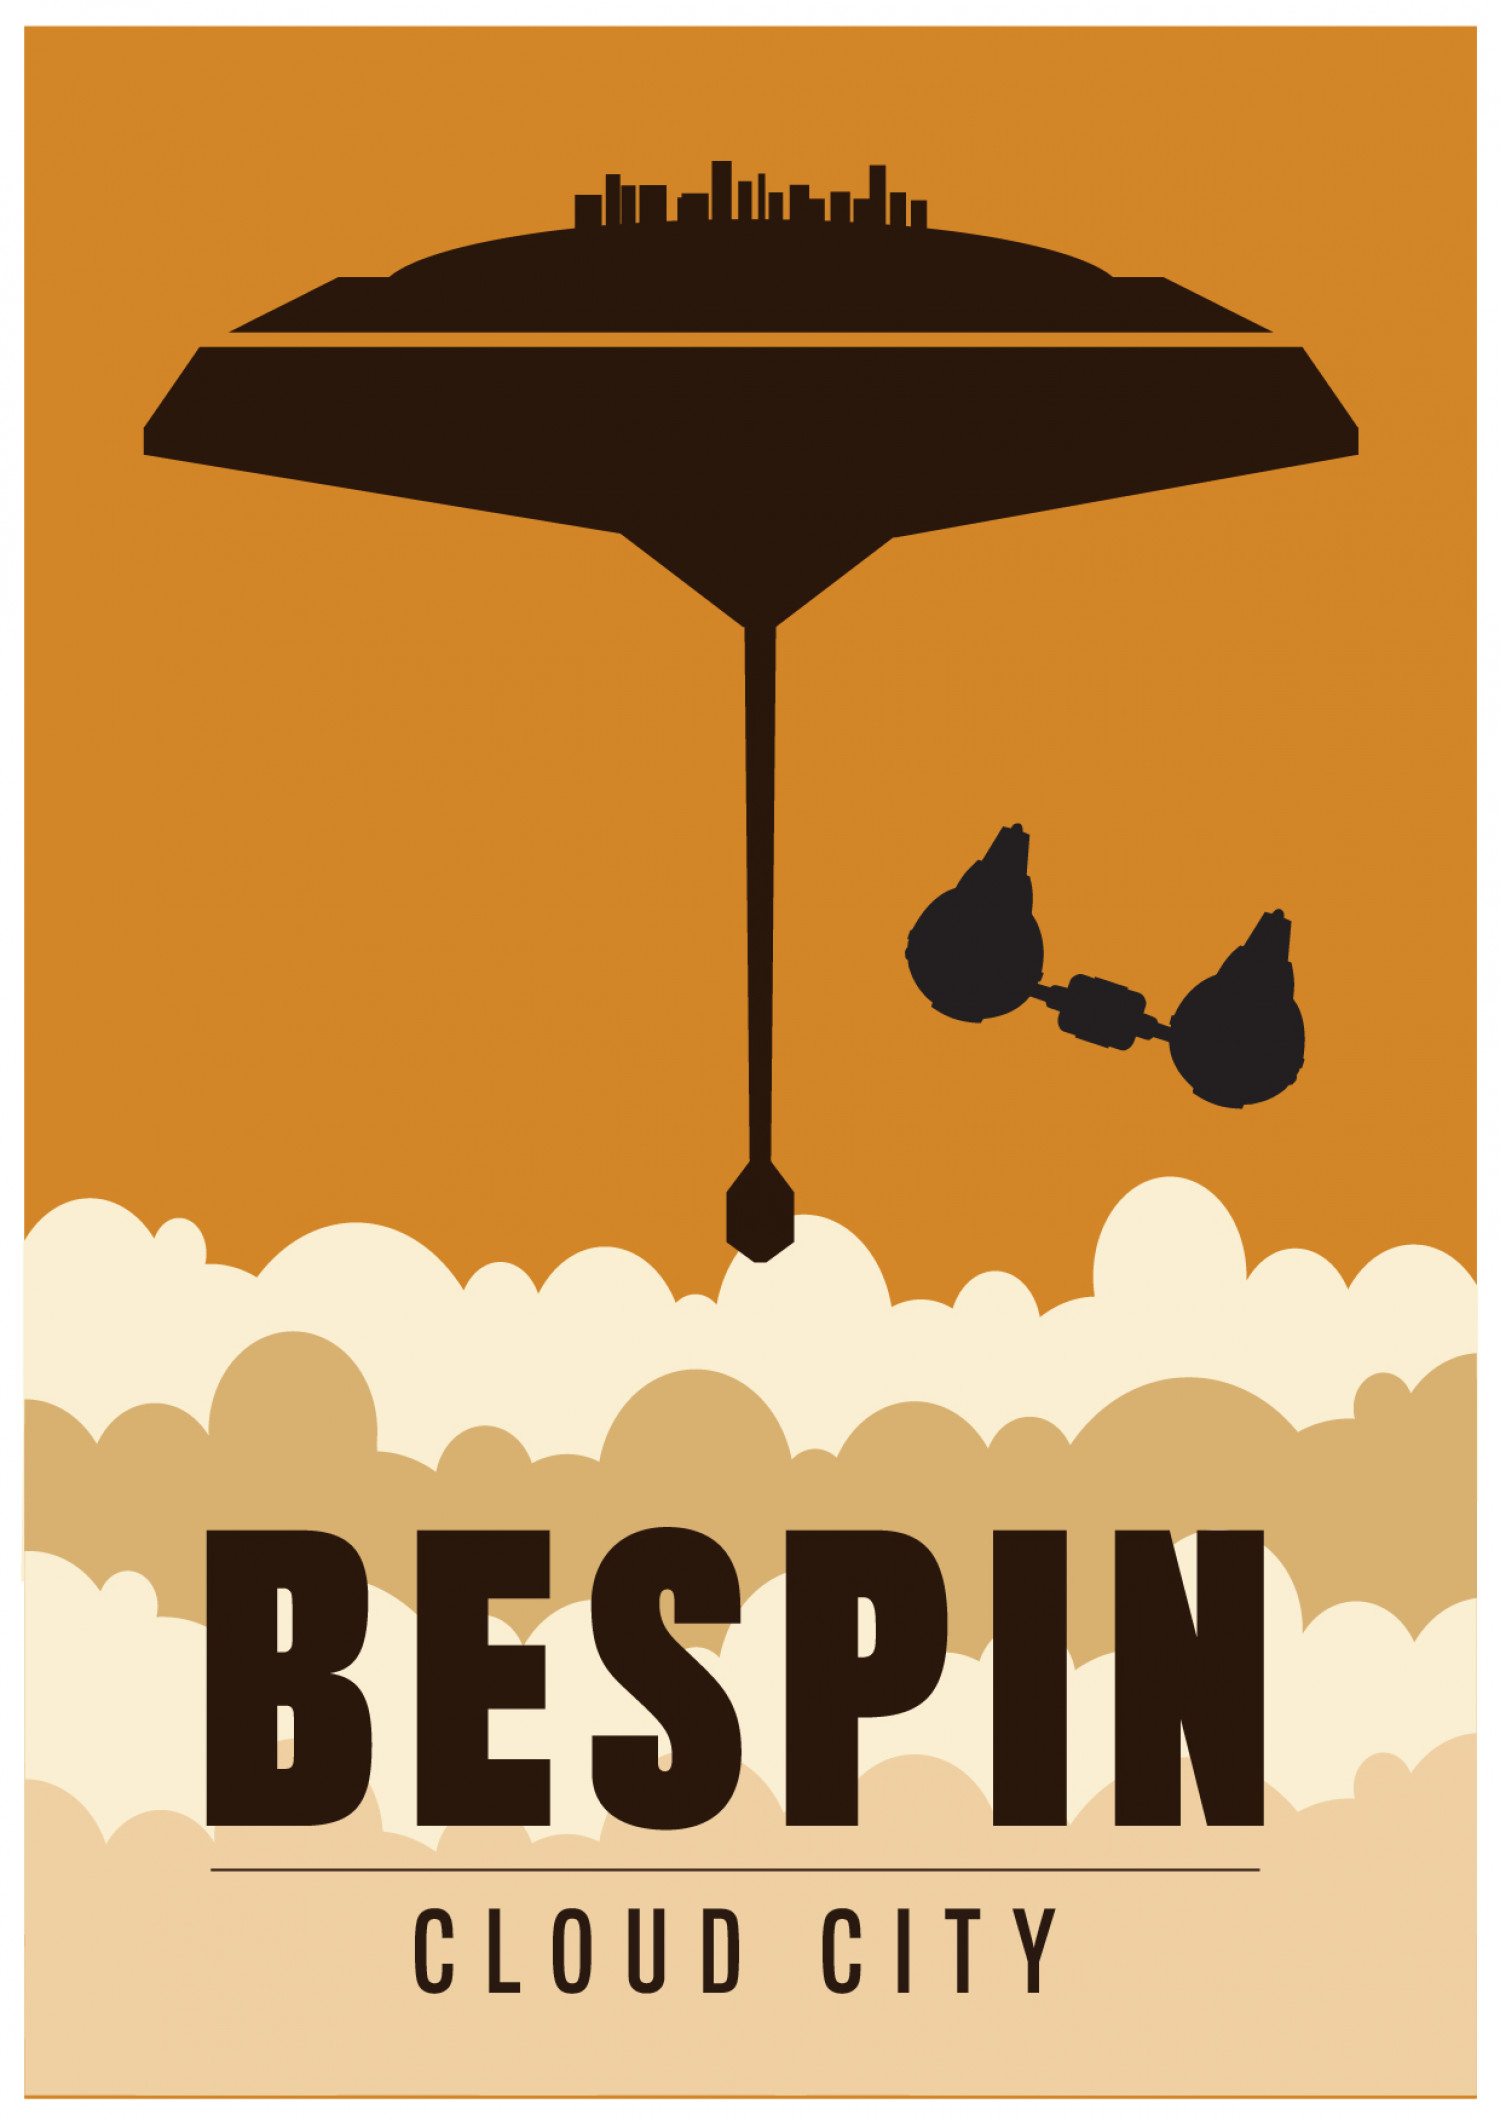 Star Wars Bespin Cloud City Infographic